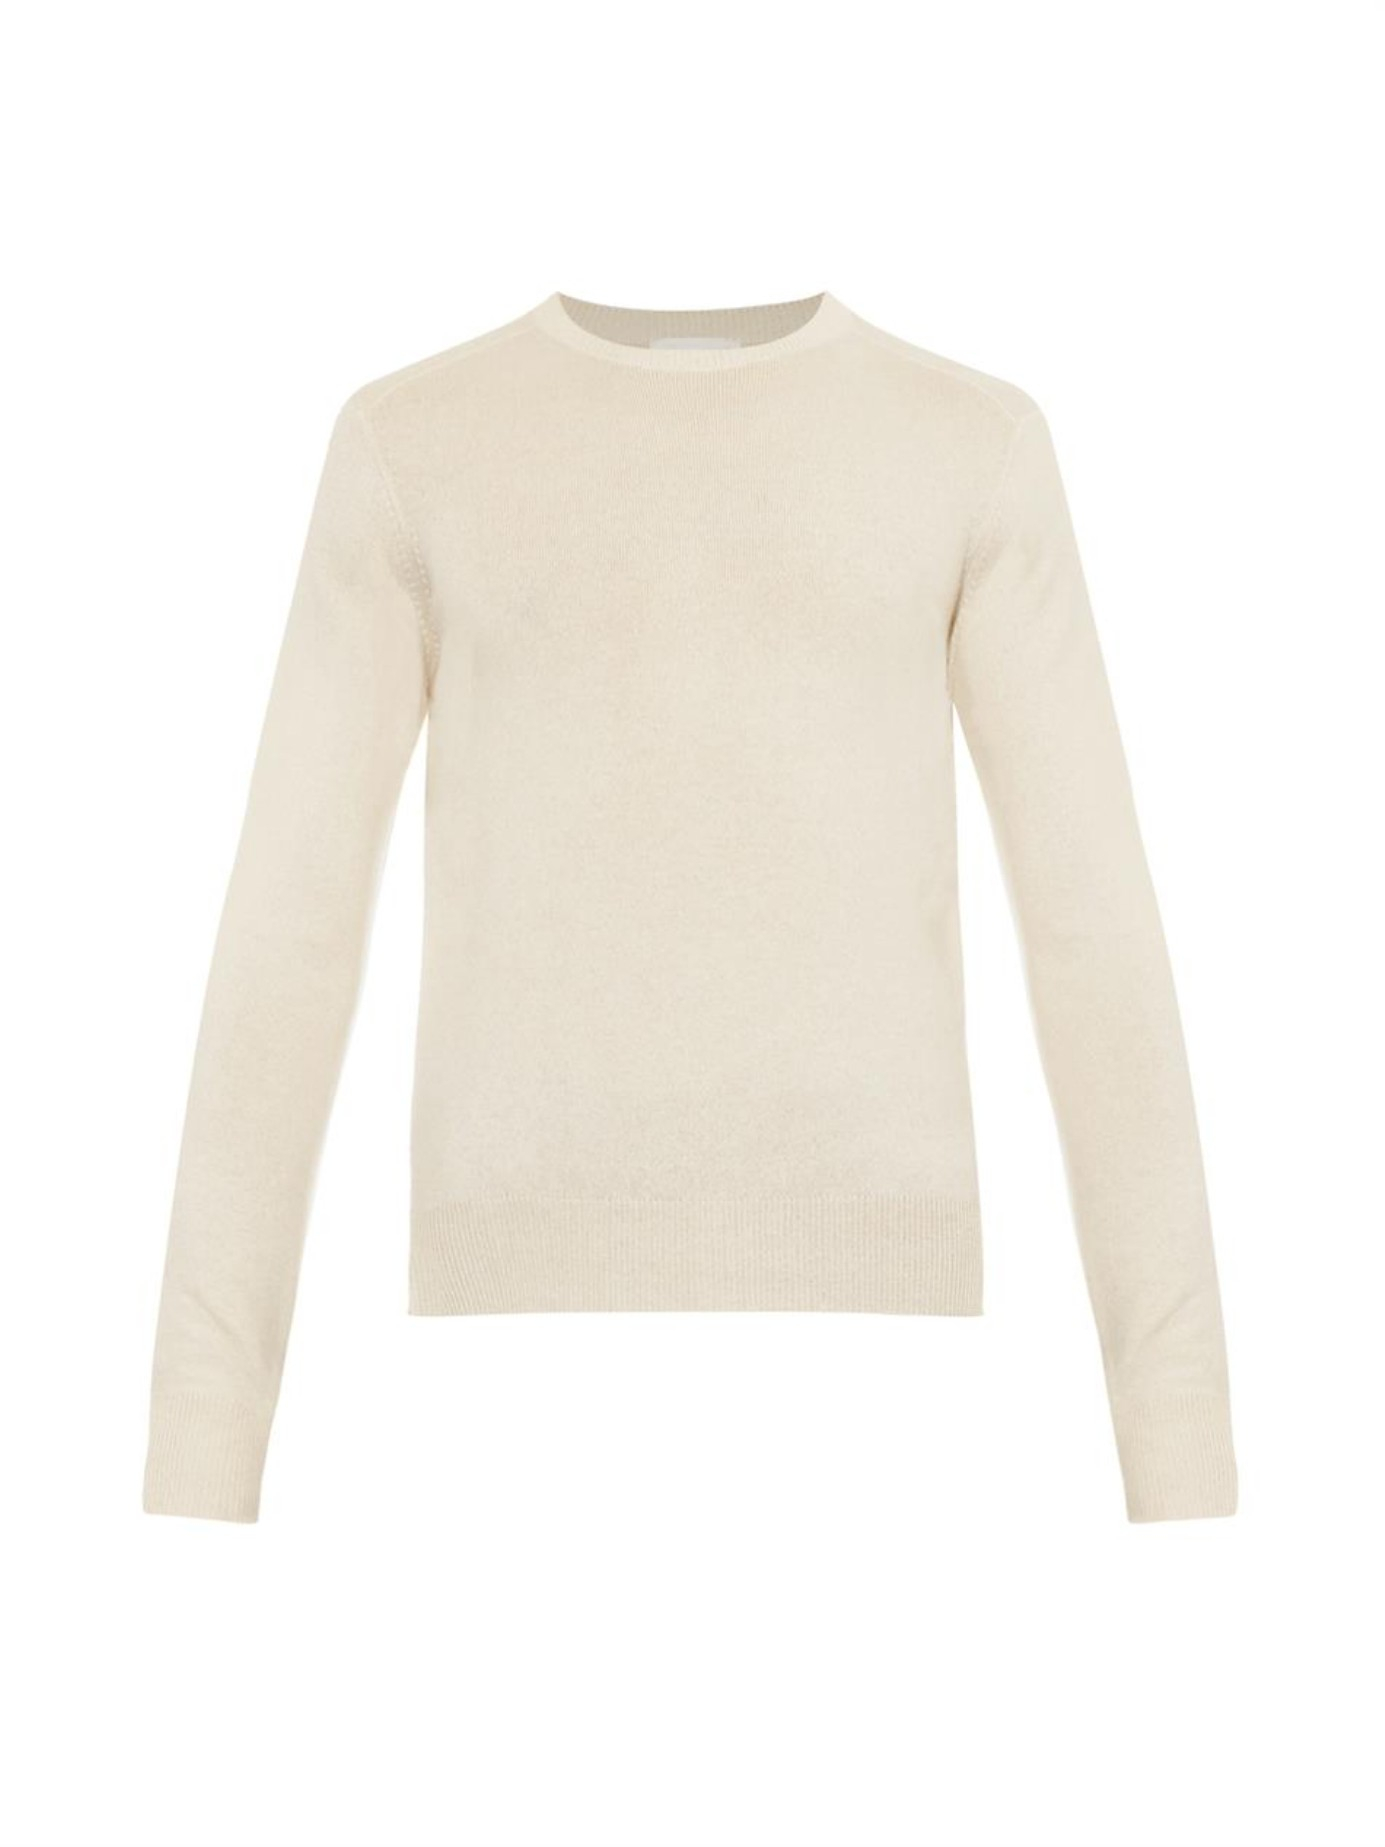 Raey Classic Crew-Neck Cashmere Sweater in White for Men | Lyst